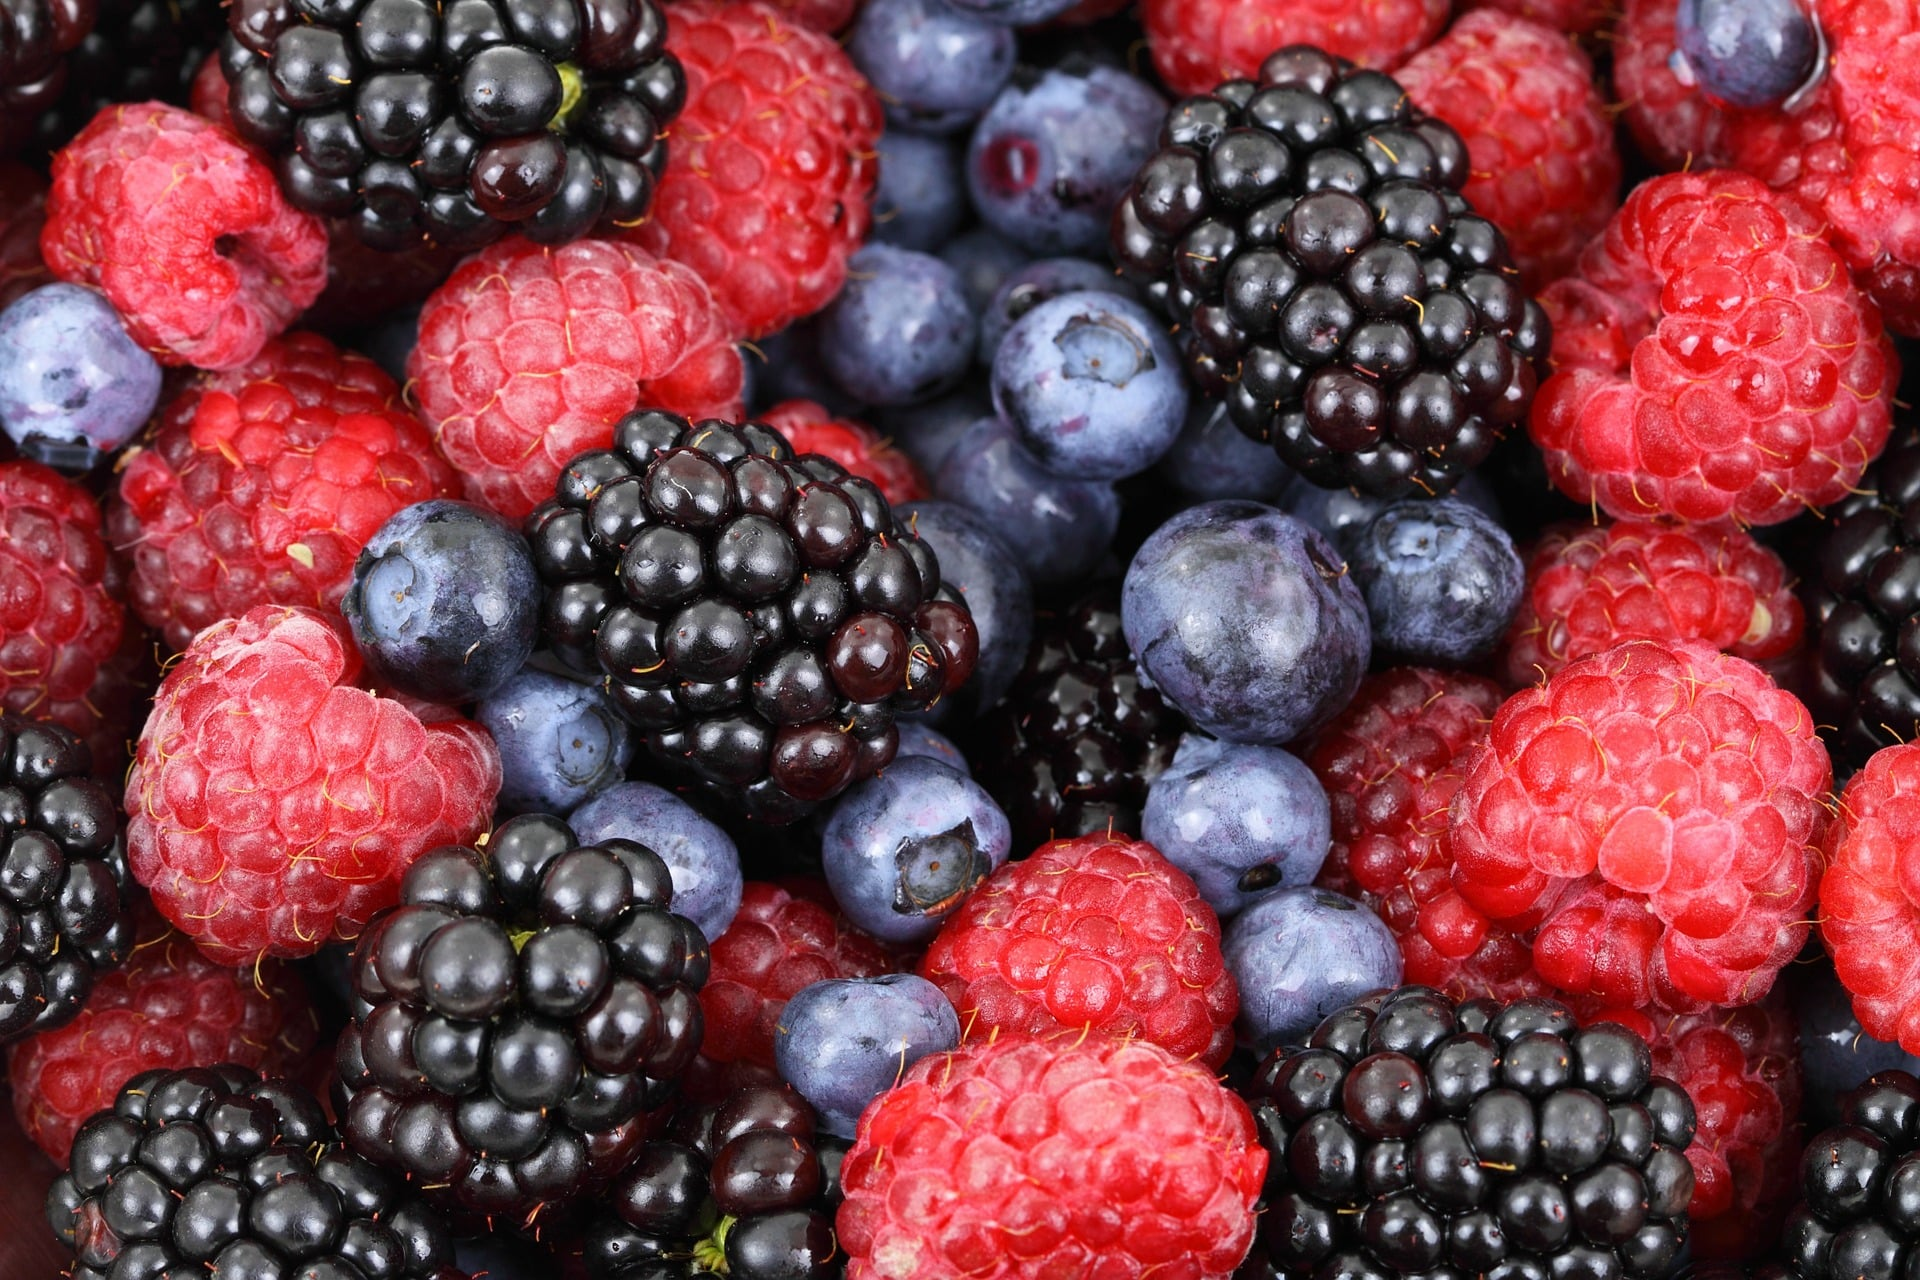 blackberries, blueberries and raspberries